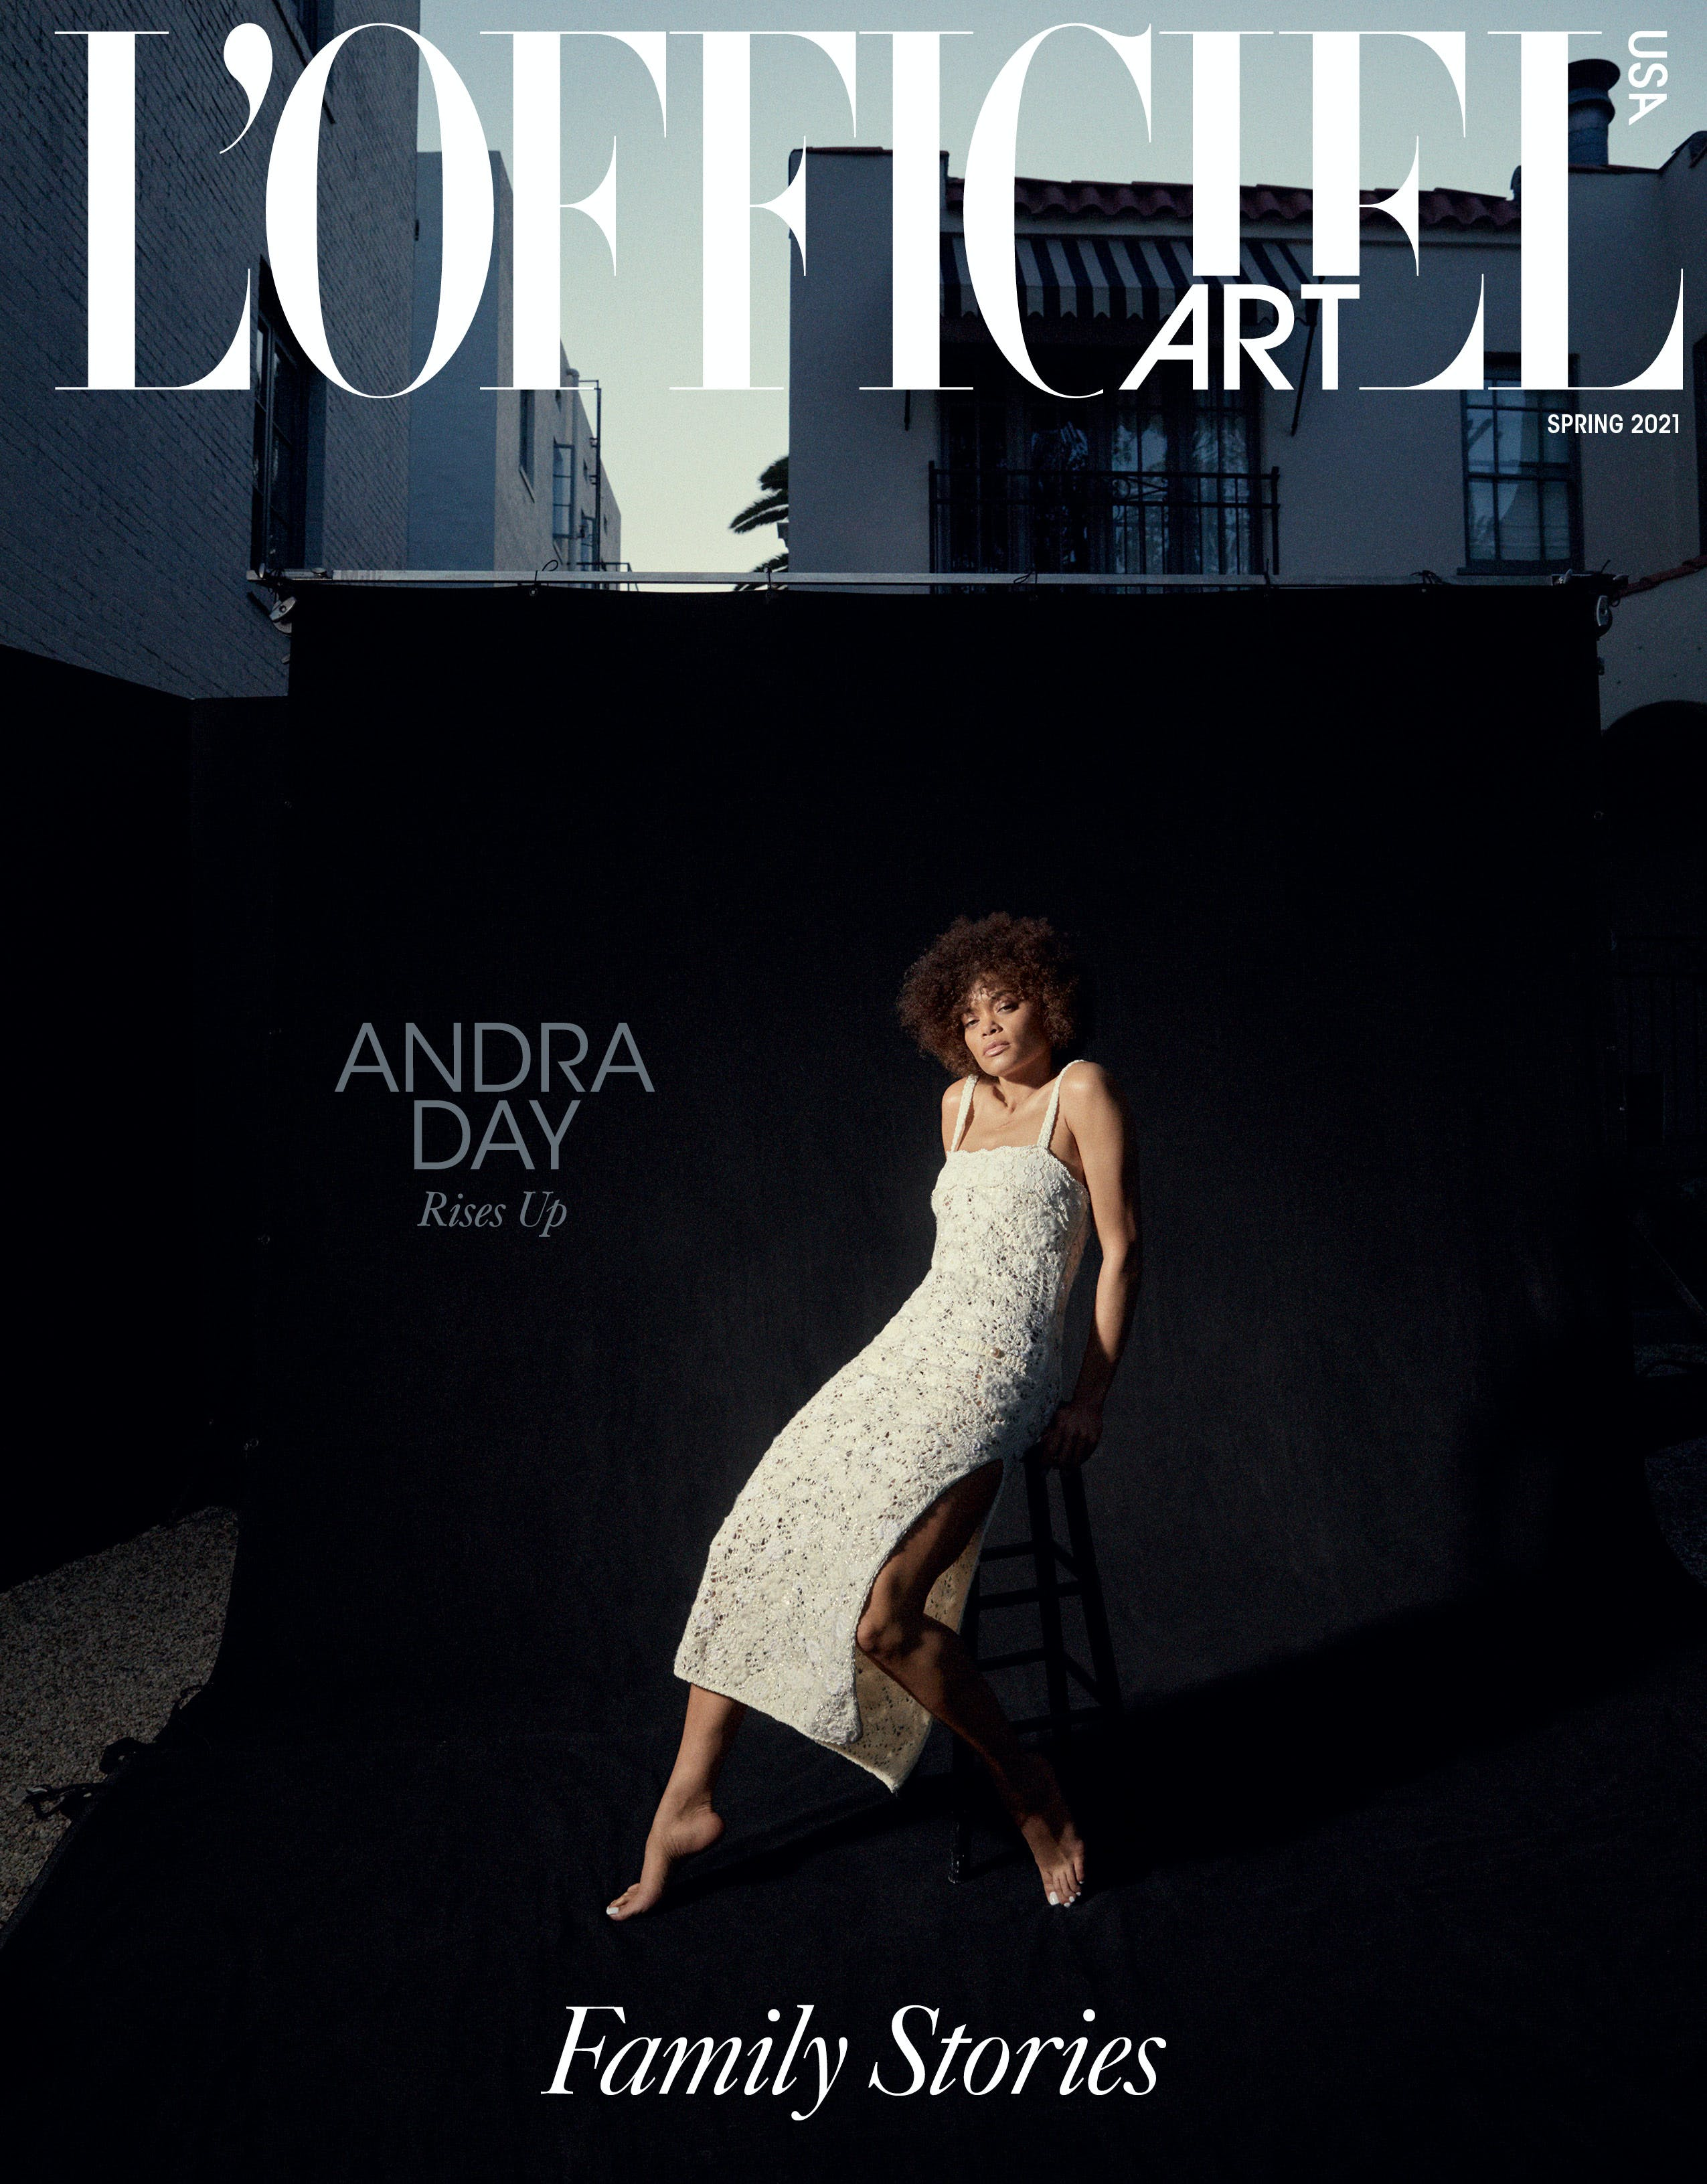 L'OFFICIEL Art USA Spring 2021 Issue - Andra Day